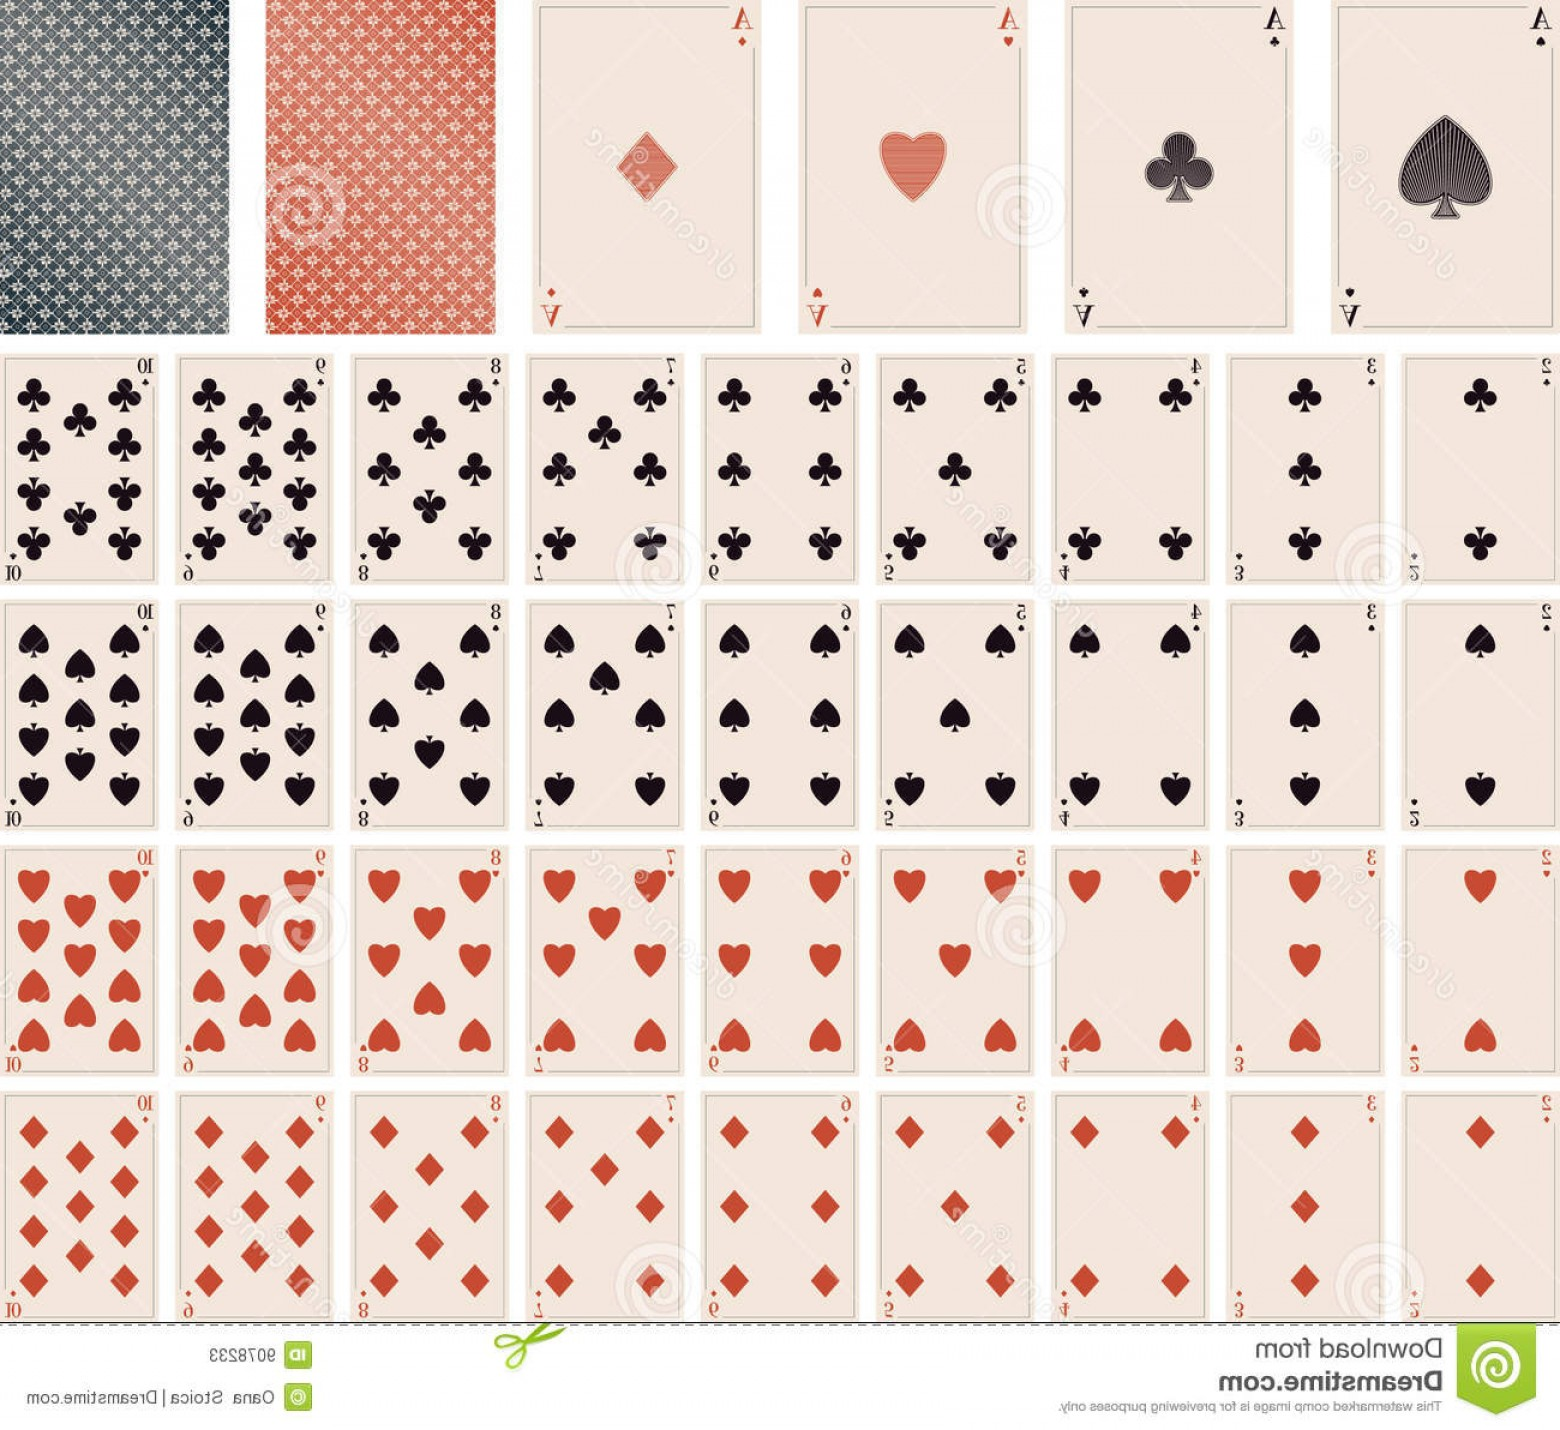 10 Playing Card Vector: Stock Photos Vector Playing Cards To Image